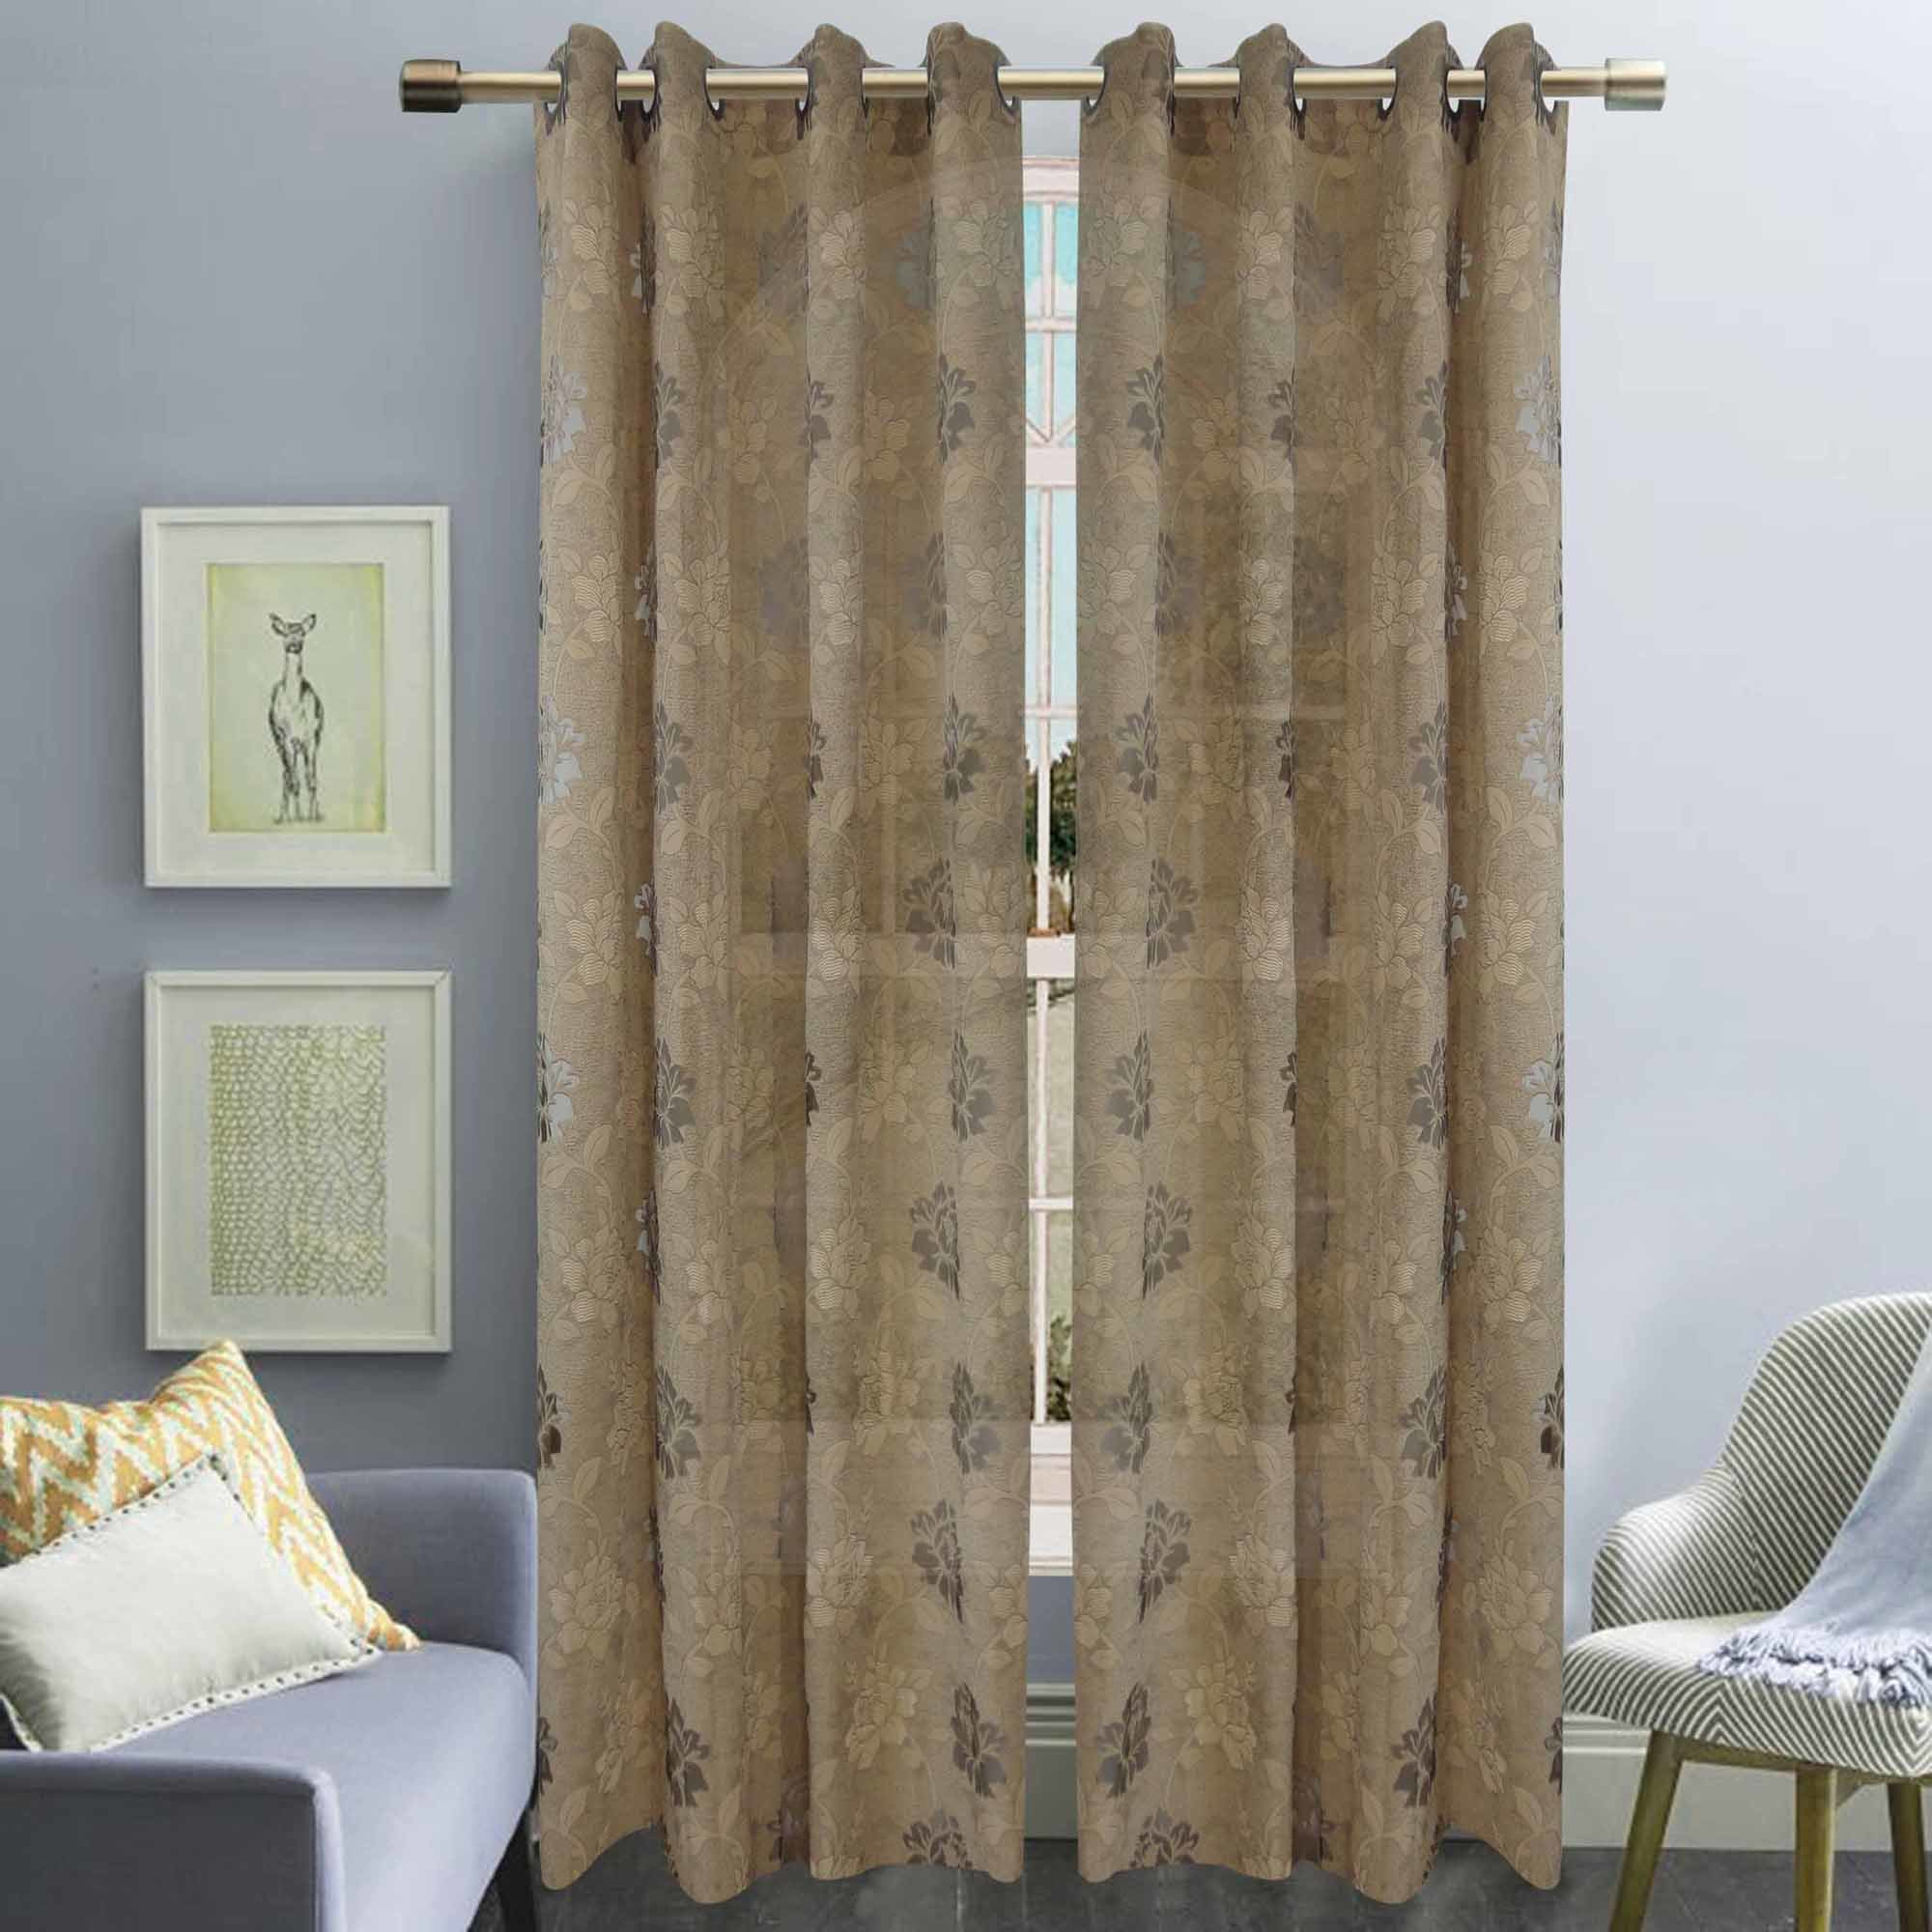 Jacquard Sheer Grommet Panel Window Curtain (HR14WT082)